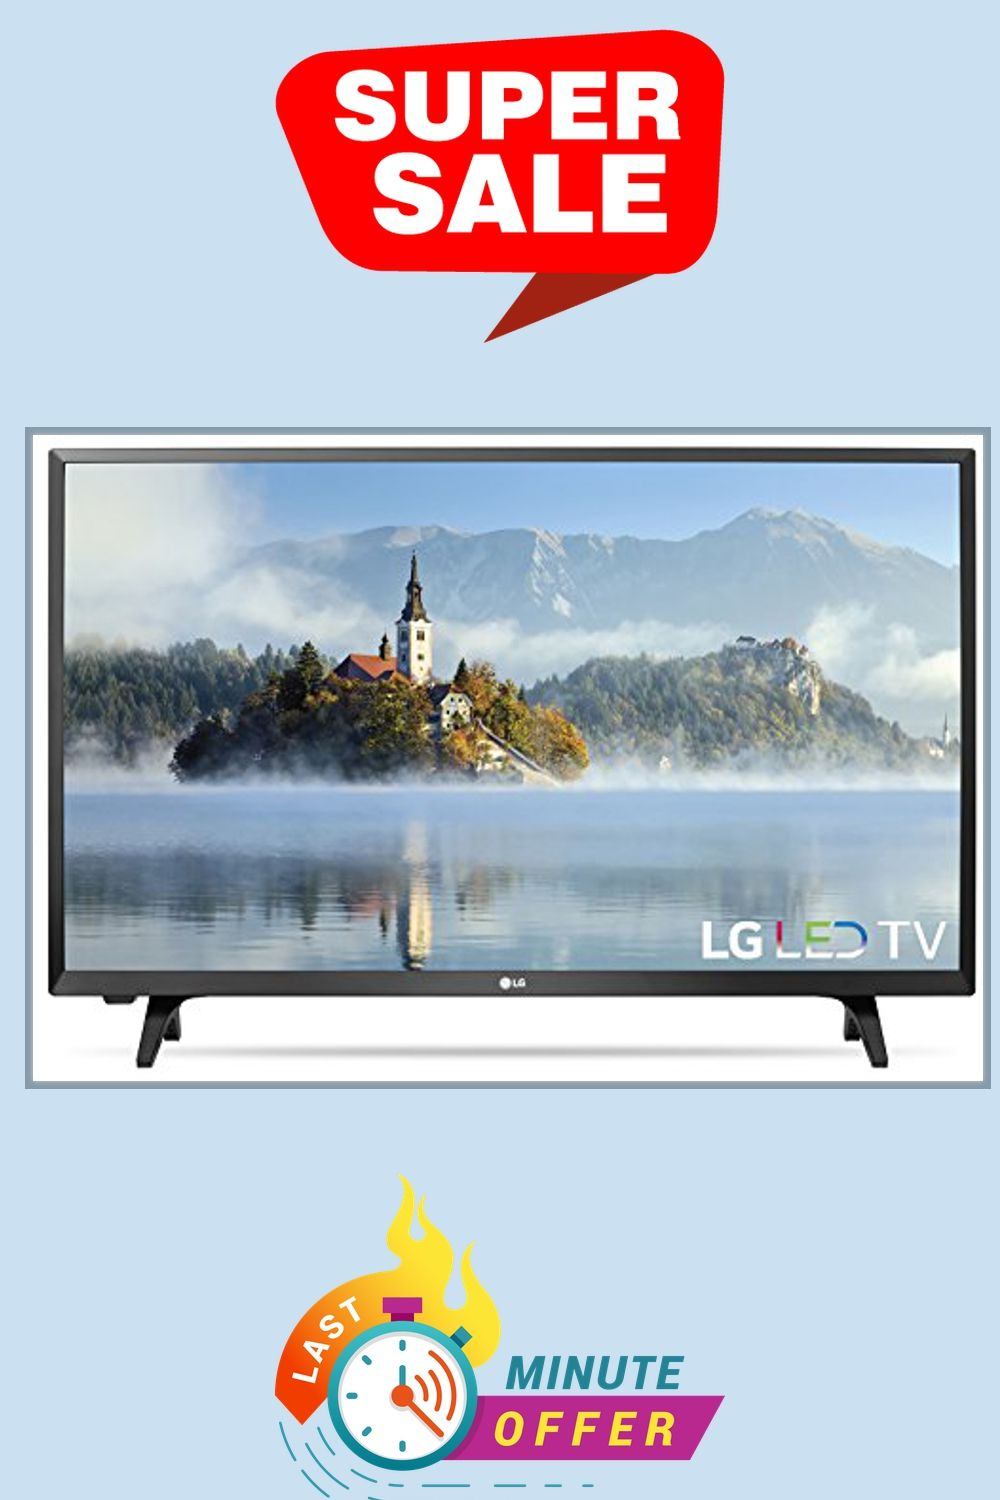 4 Best 32 Inch Tv Labor Day Sale 2020 From Samsung Lg Vizio Sony Labor Day Deal In 2020 32 Inch Tv Vizio Tv Deals